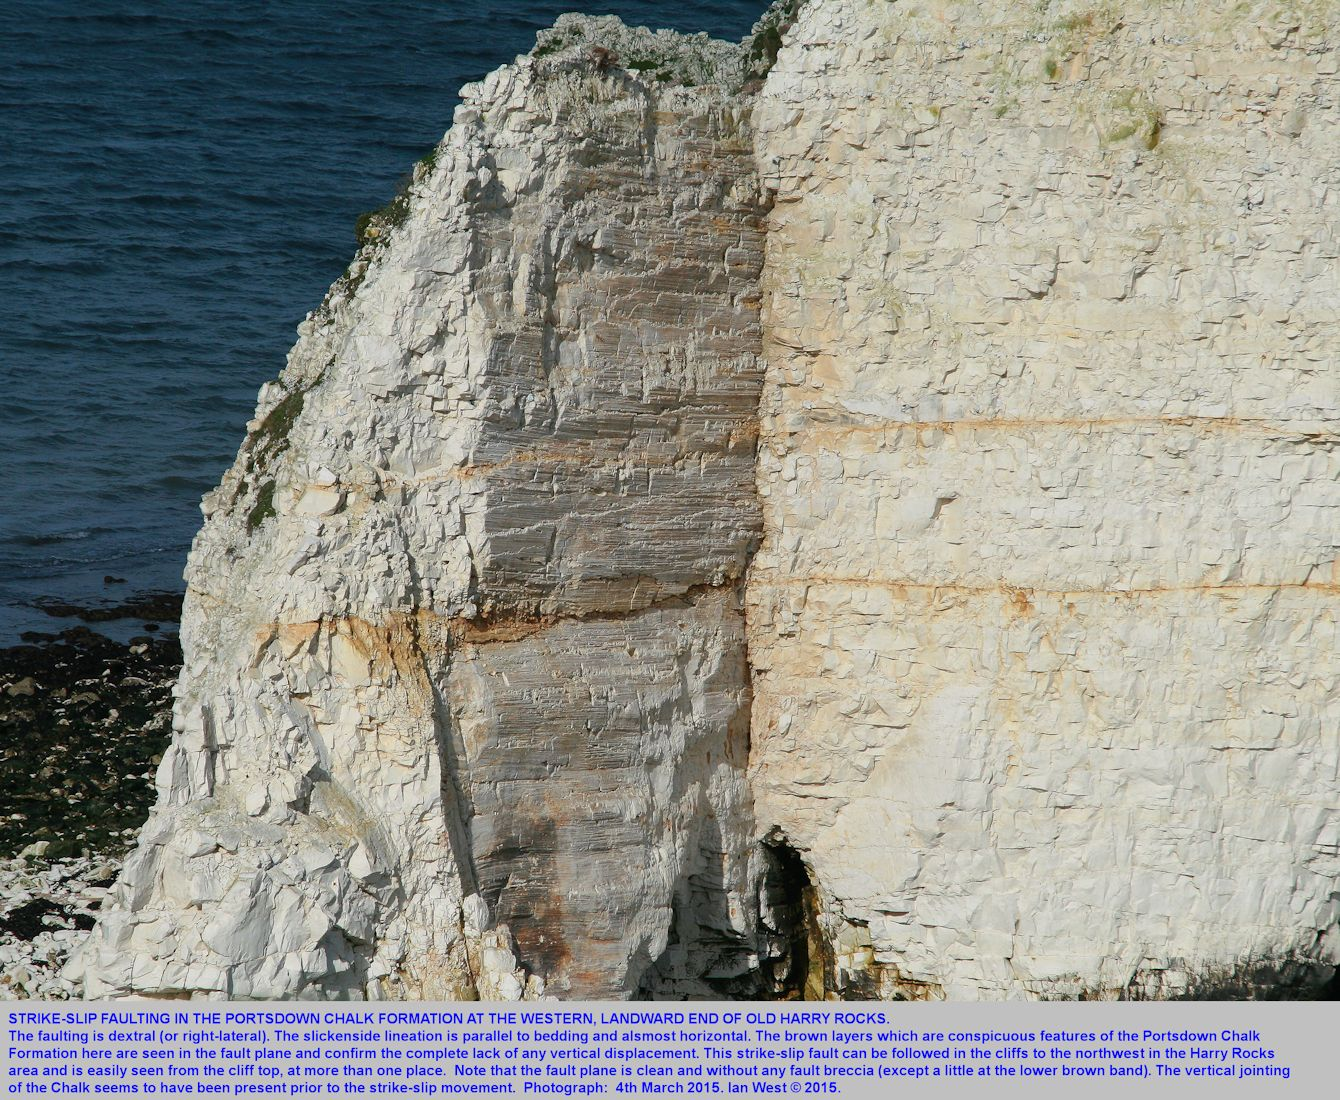 Strike-slip faulting seen at the western end of Old Harry Rocks, Dorset, March 2015